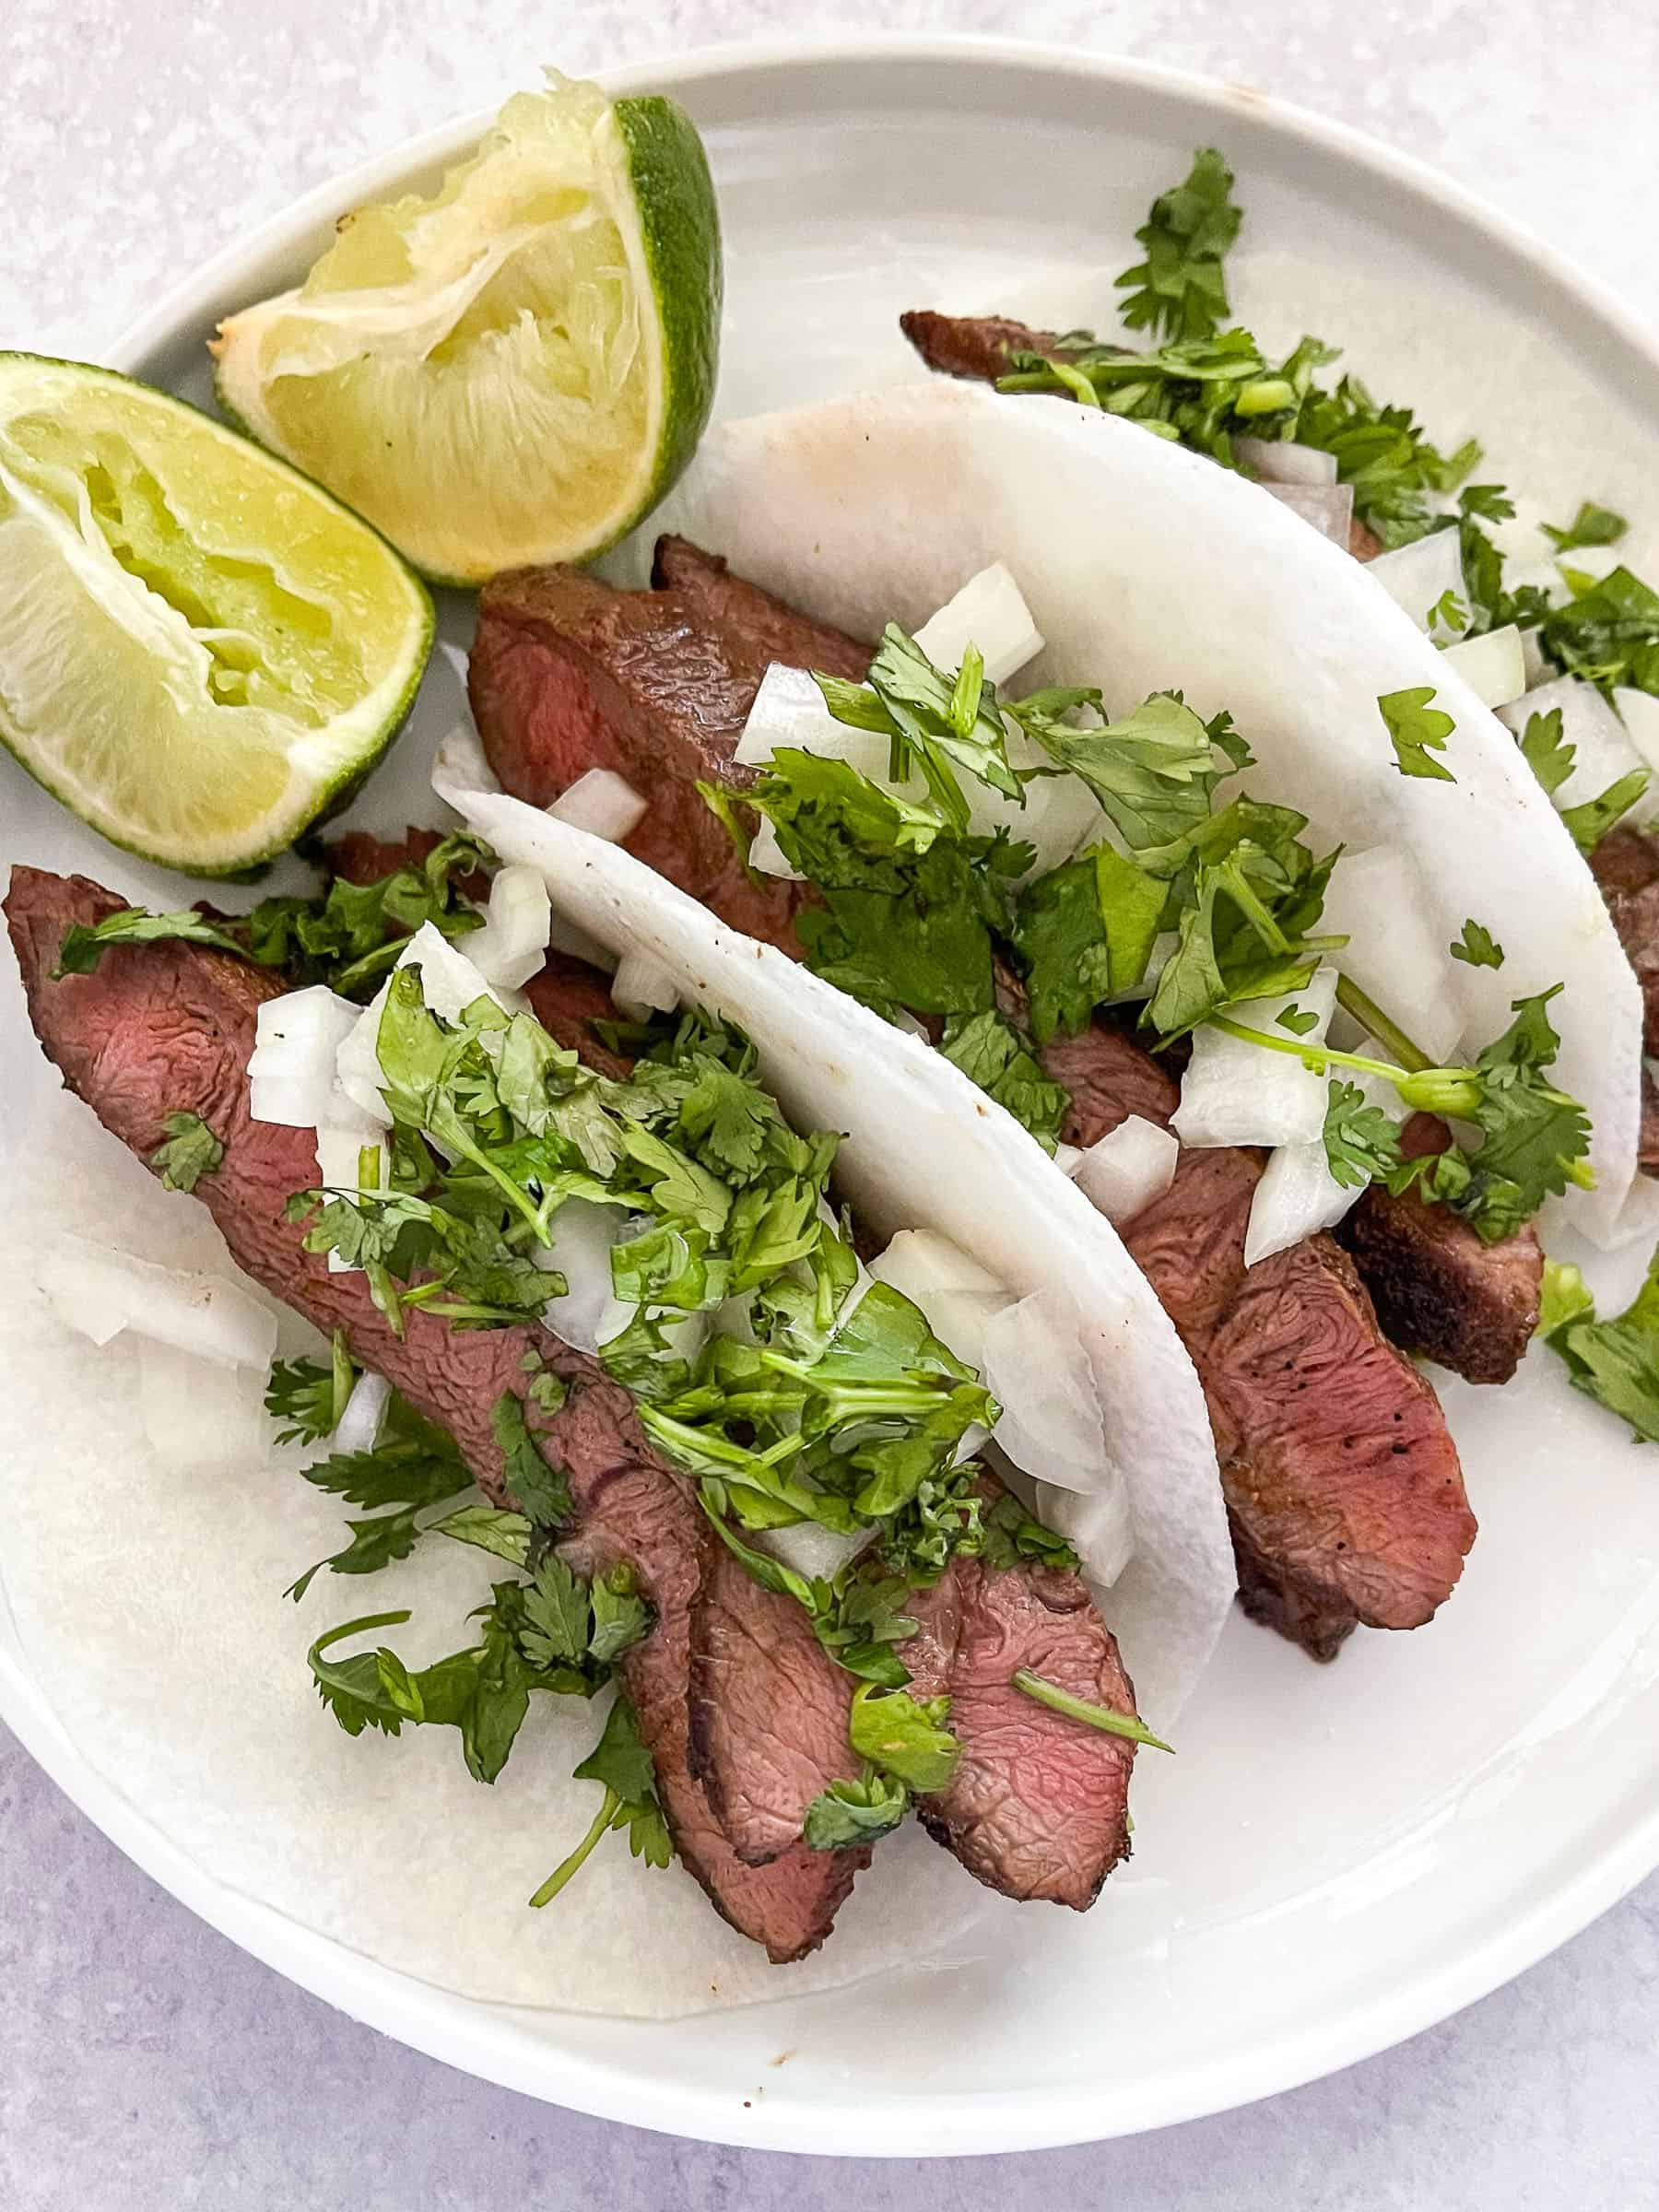 steak tacos on jicama wrap on a white plate with lime and a white background